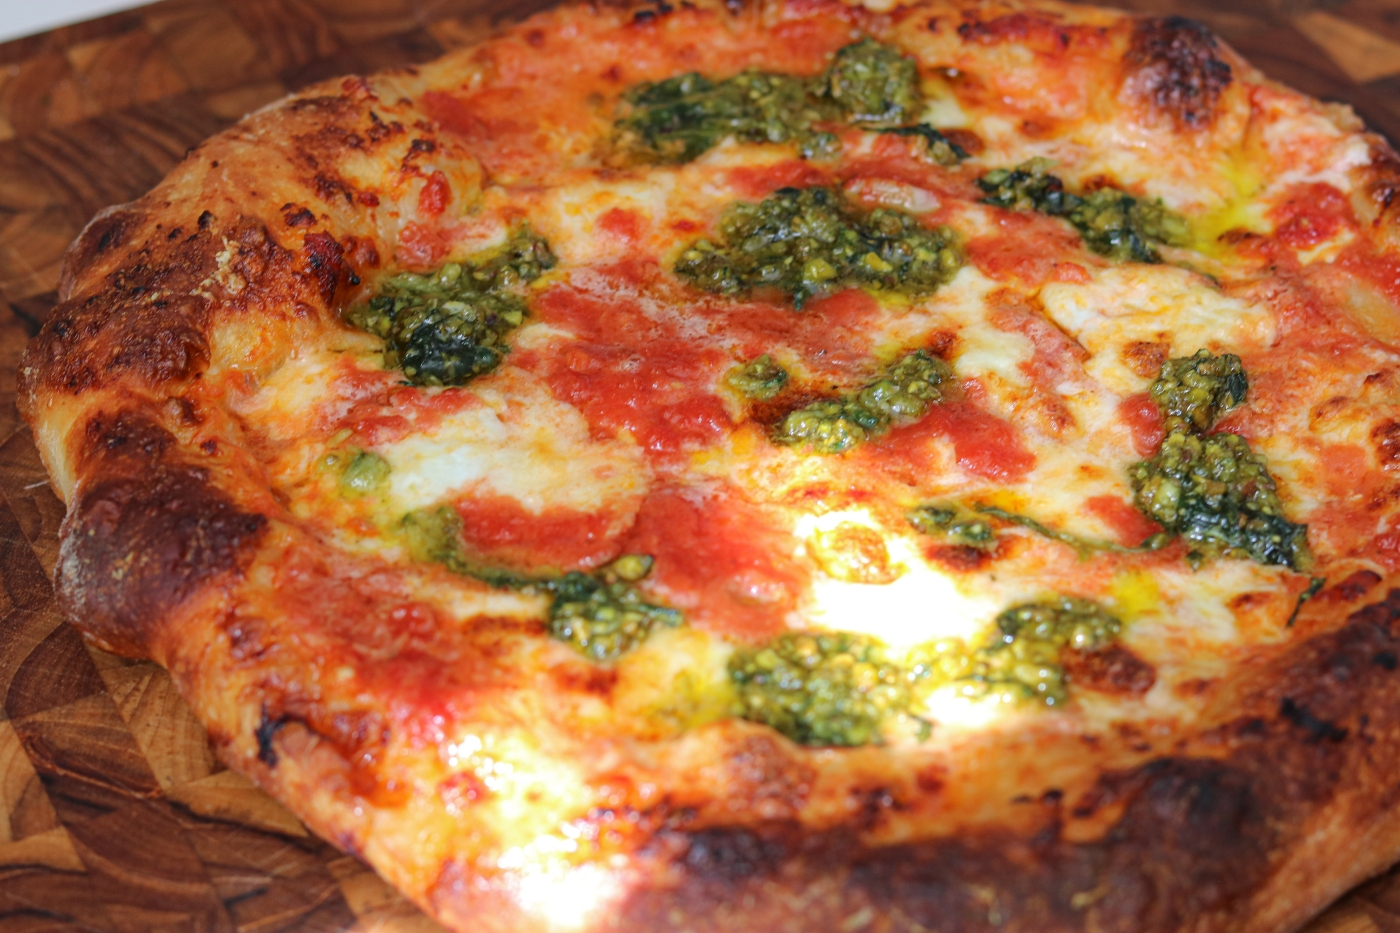 Sourdough pizza with cheese, tomato sauce and pesto